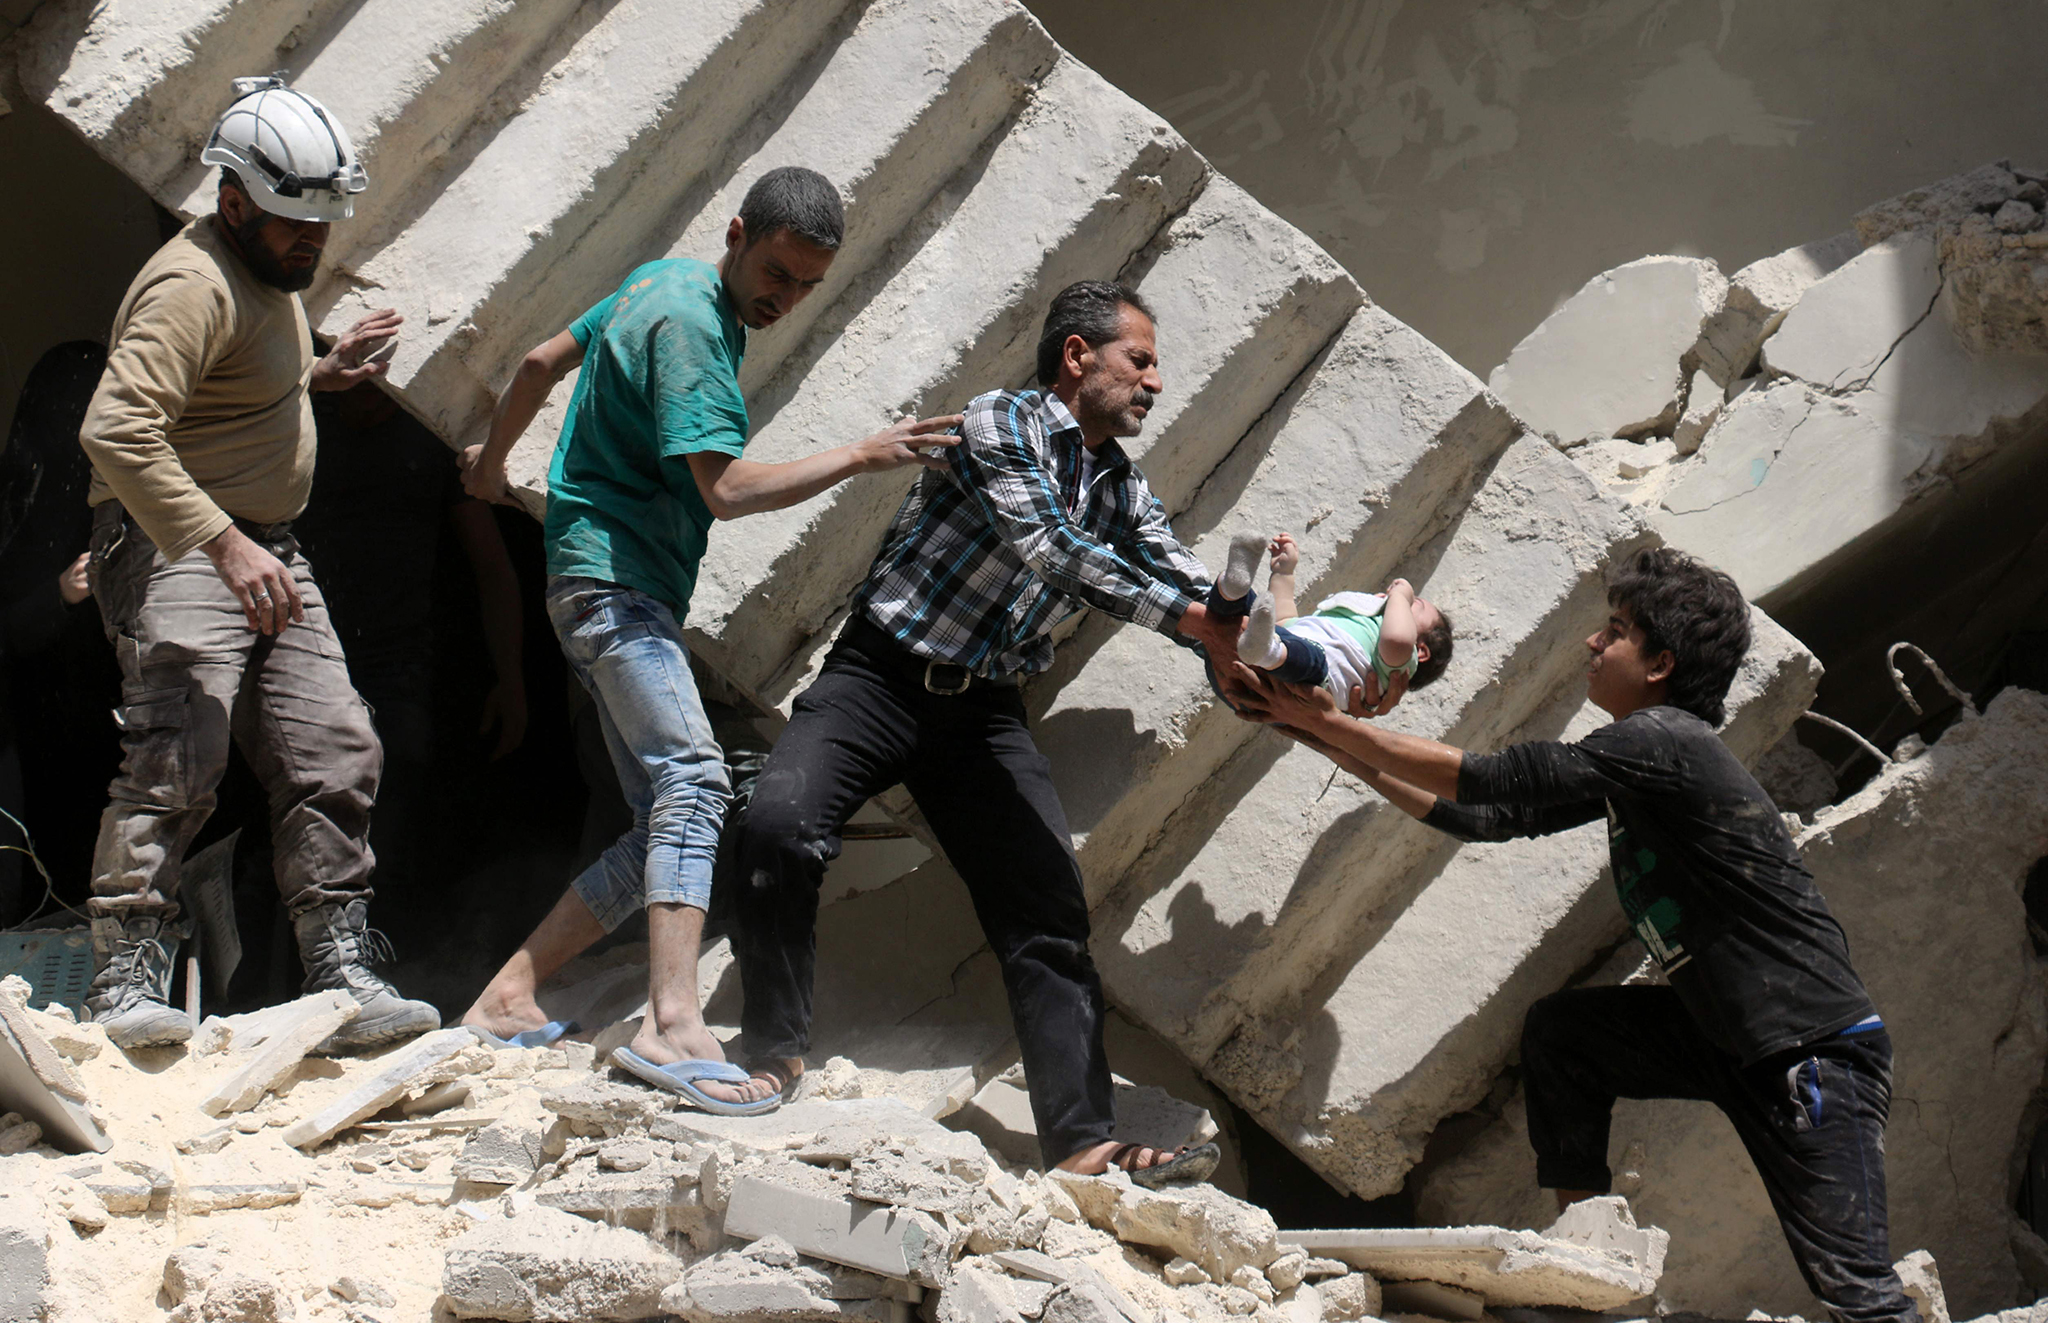 Syrian civil defence volunteers and rescuers remove a baby from under the rubble of a destroyed building following a reported air strike on the rebel-held neighbourhood of al-Kalasa in the northern Syrian city of Aleppo.